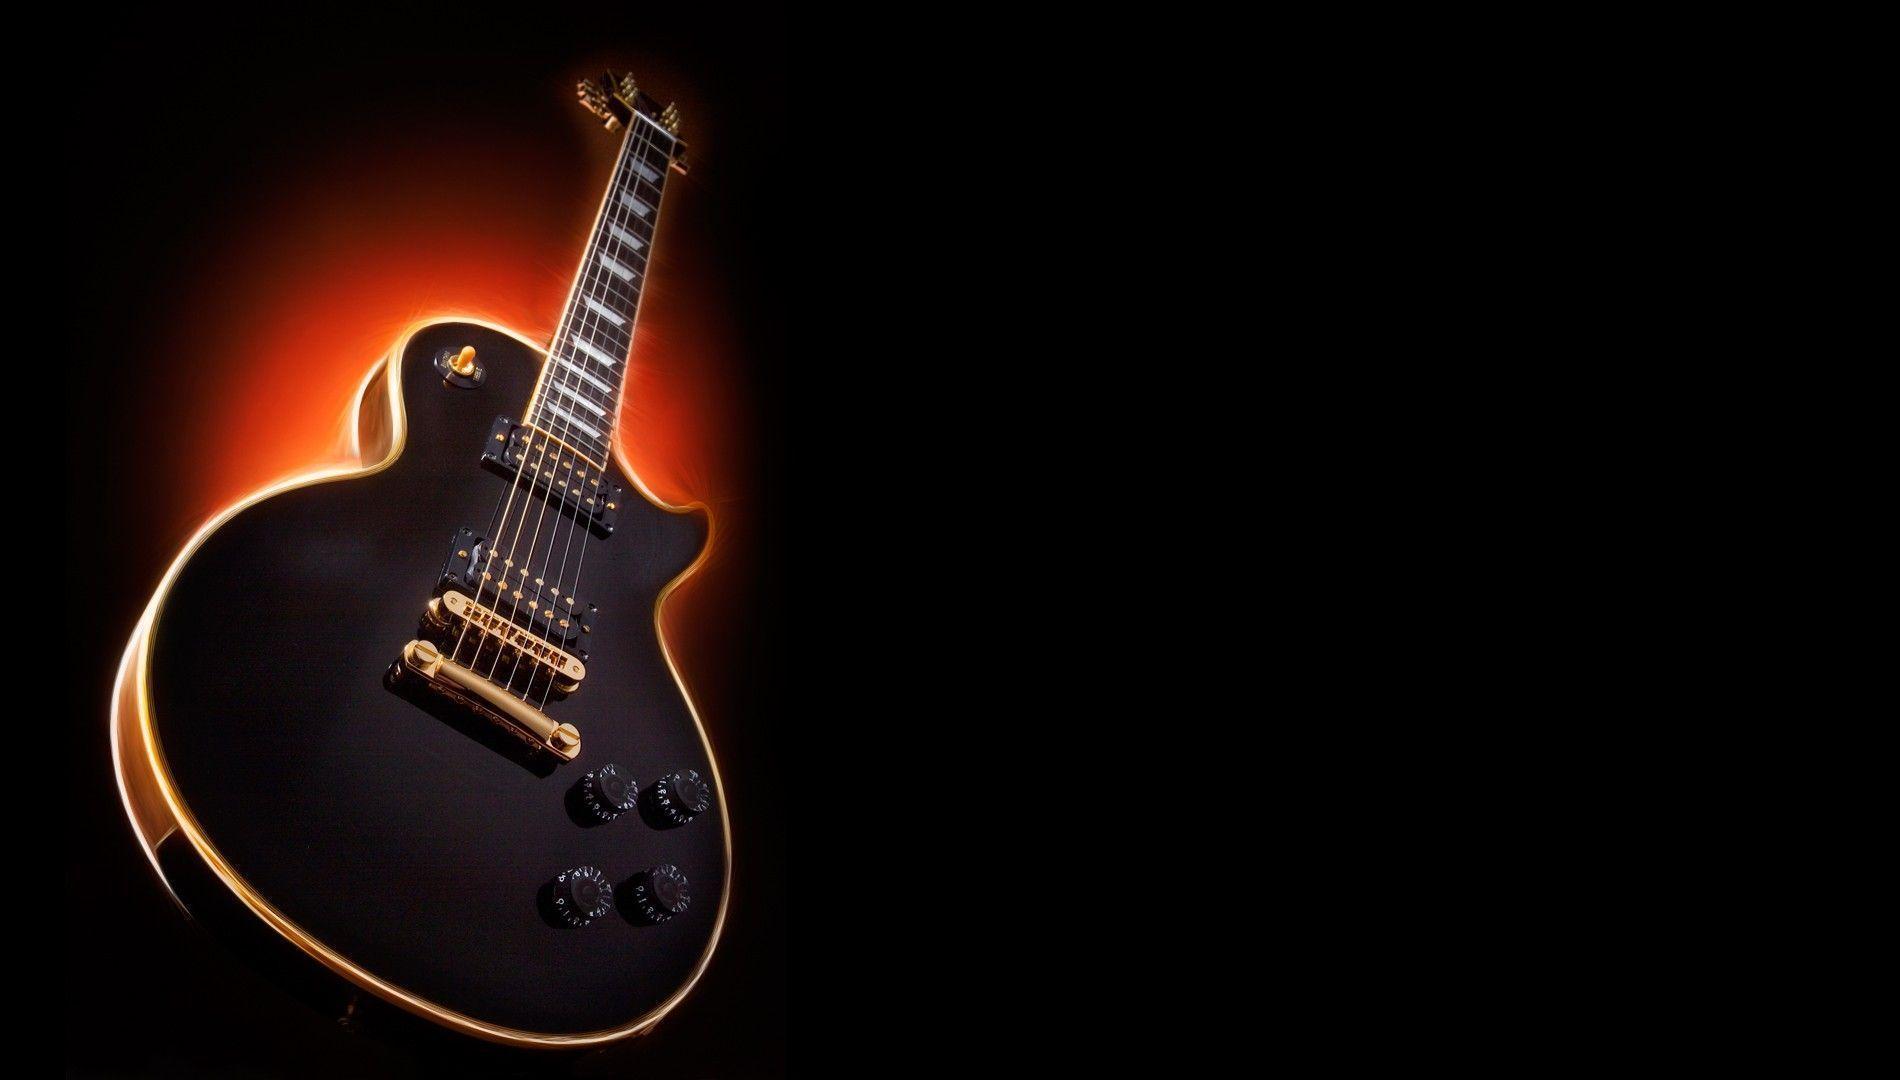 guitar wallpaper les paul - photo #16